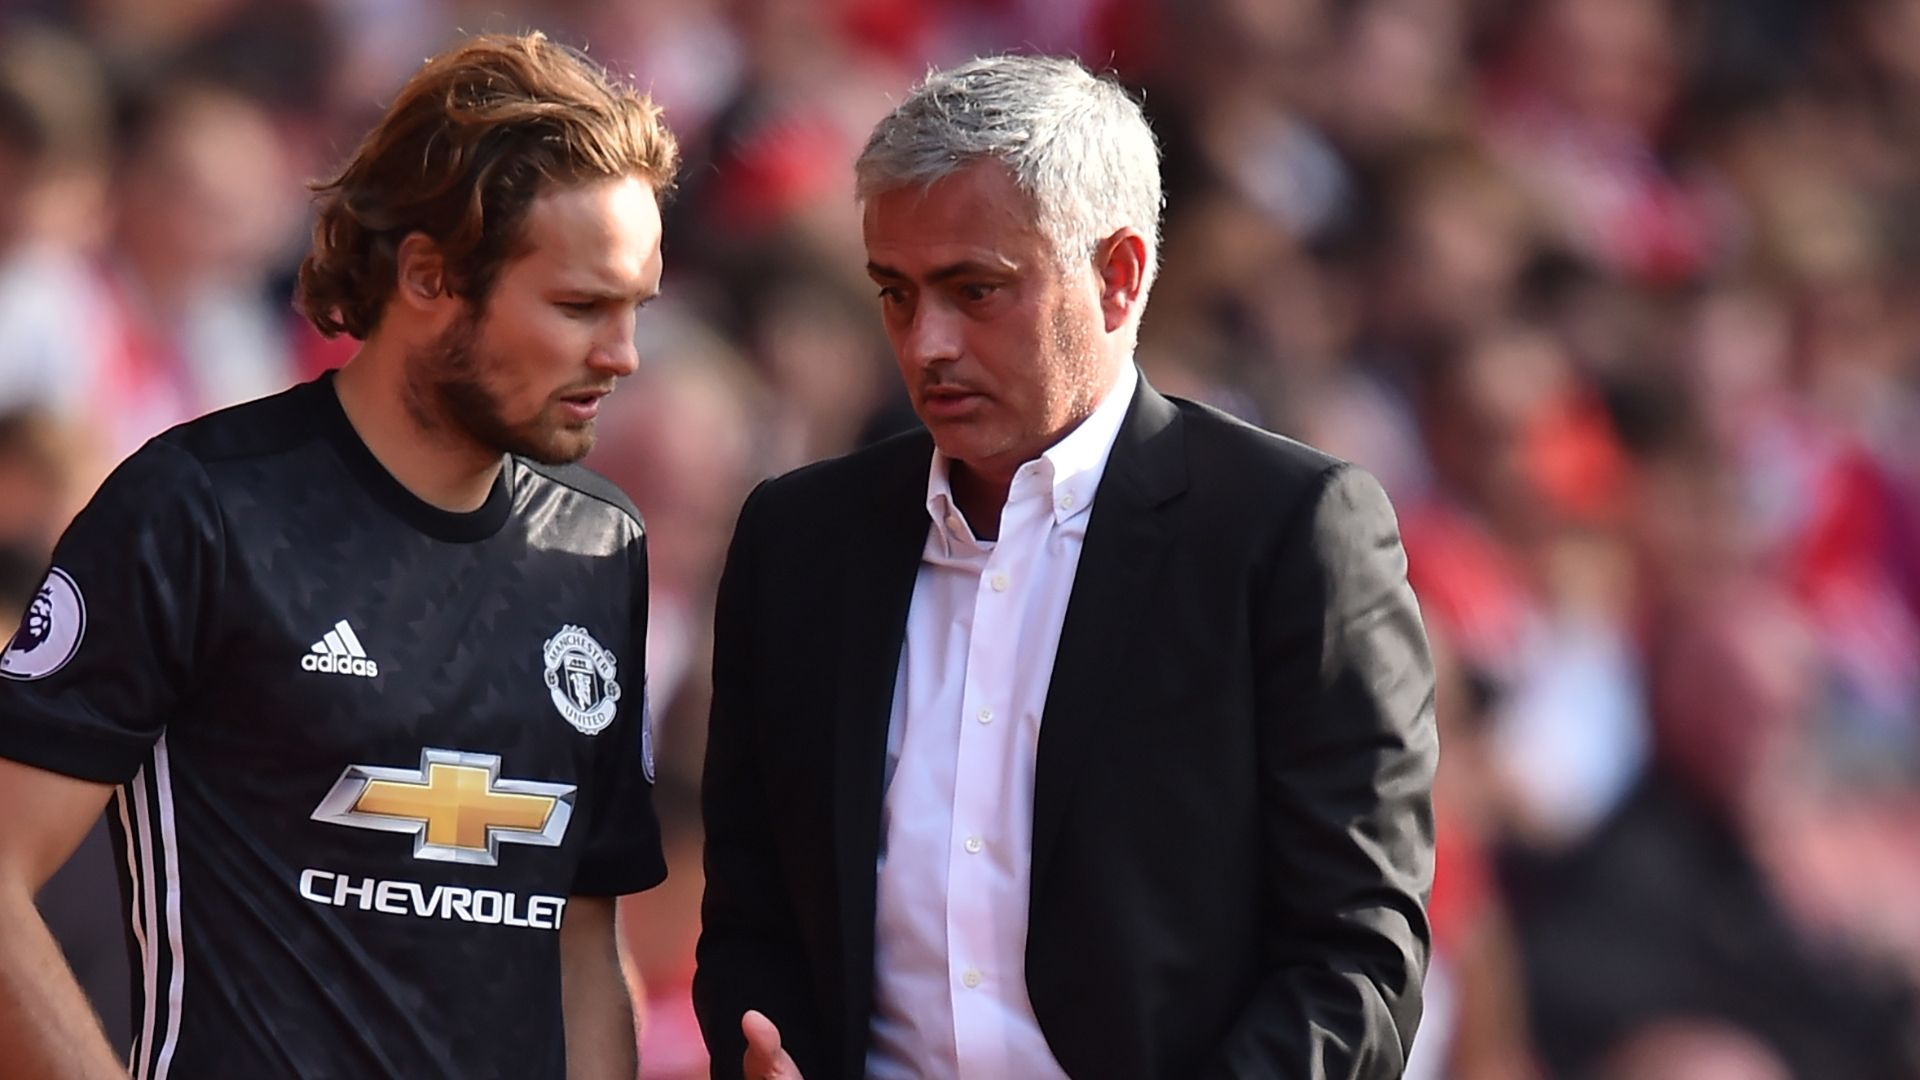 Manchester United manager Jose Mourinho 'a true winner' - Daley Blind